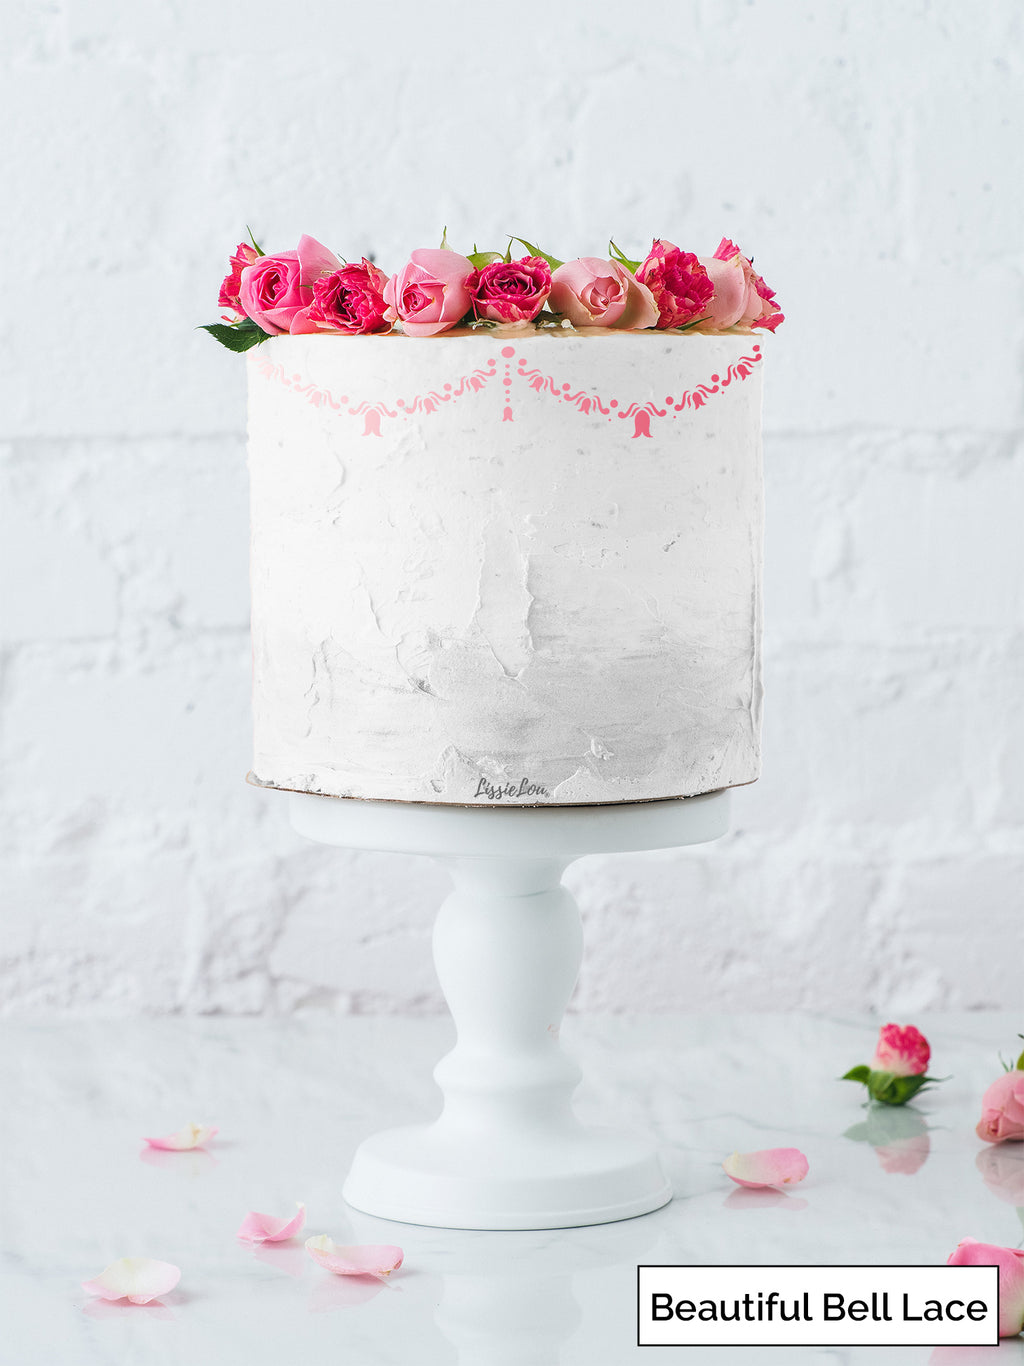 Beautiful Bell Lace Cake Stencil - Border Design